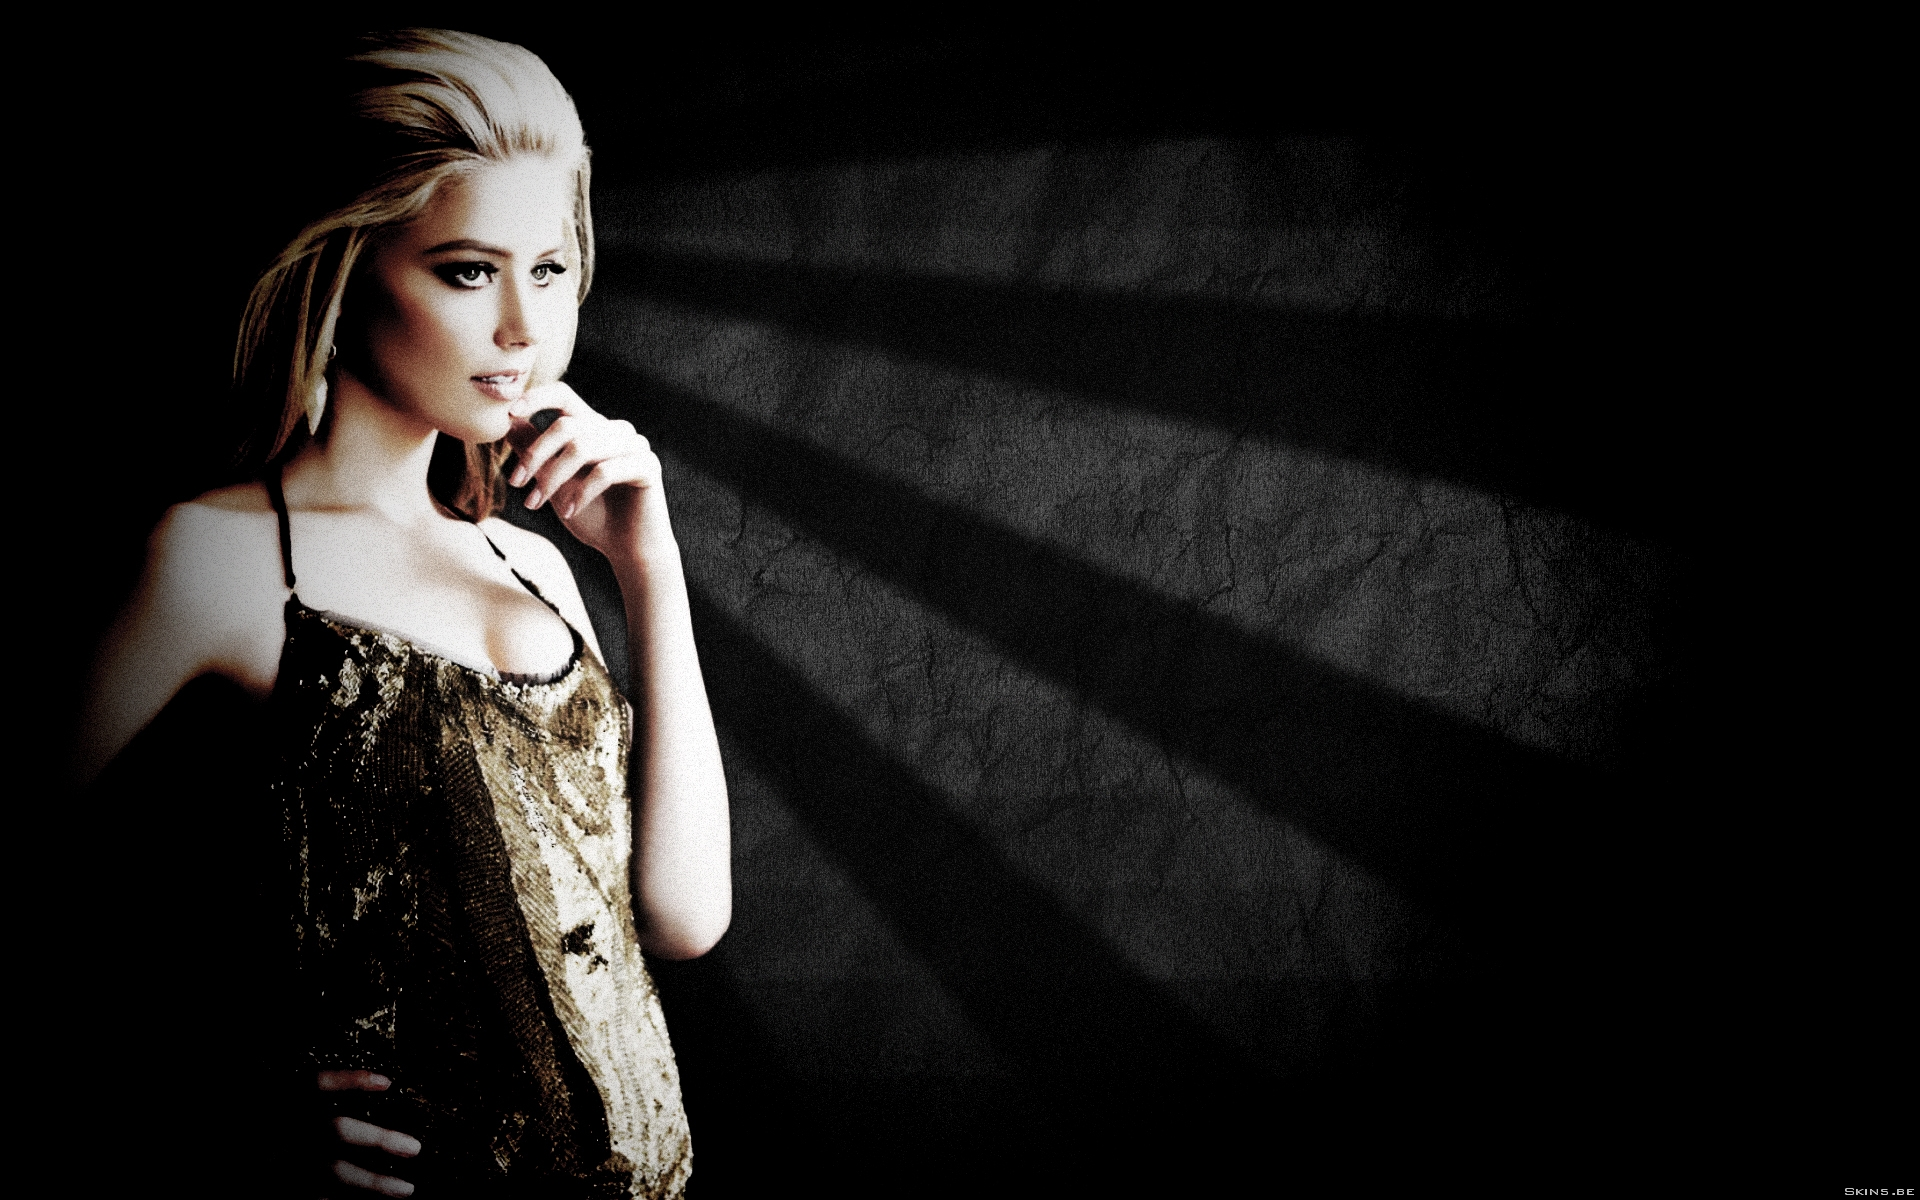 Amber Heard Hd: Amber Heard Backgrounds, Pictures, Images